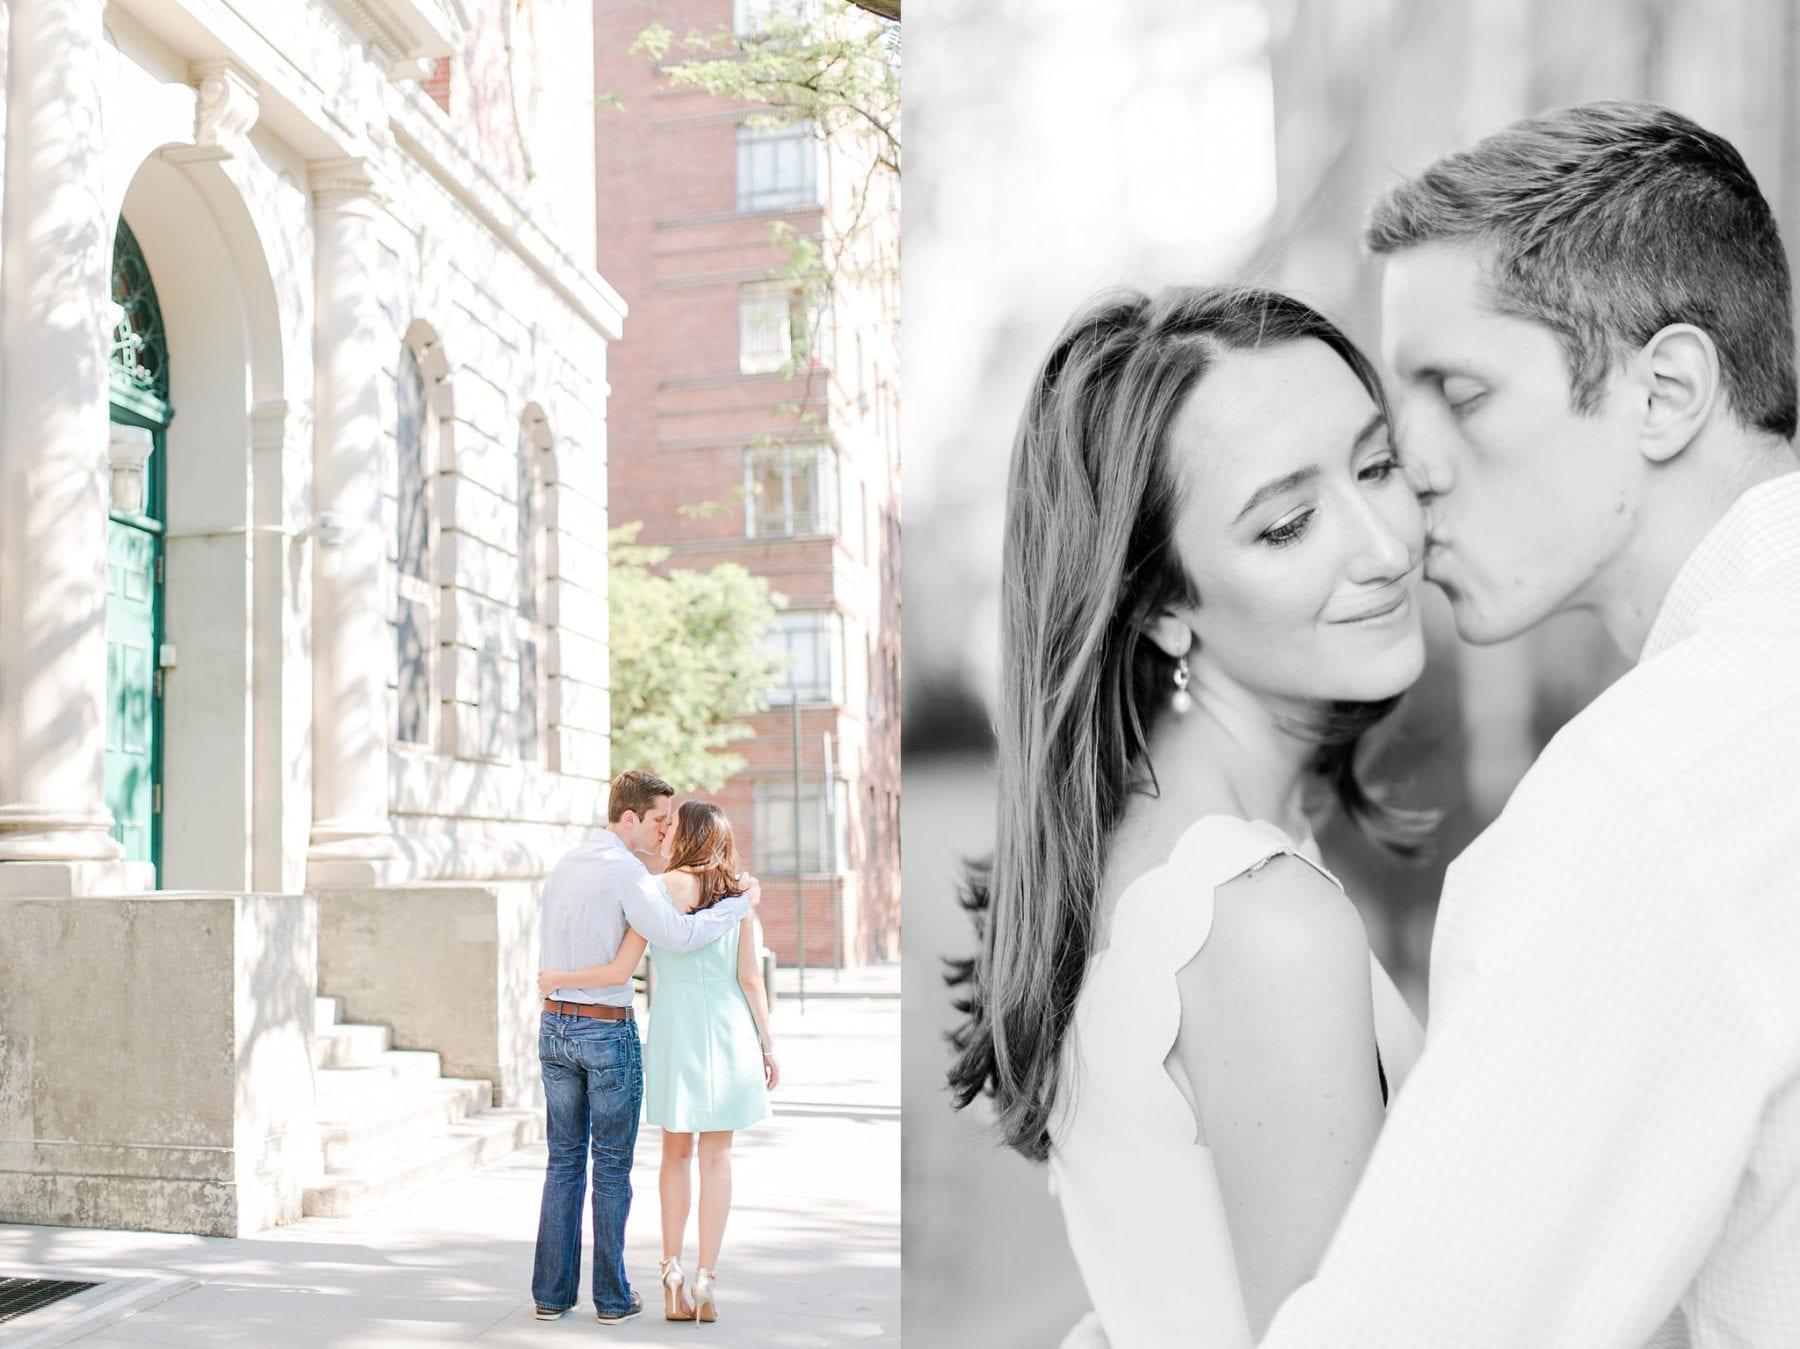 West Village Central Park Engagement Photos NYC Wedding Photographer Megan Kelsey Photography-52.jpg